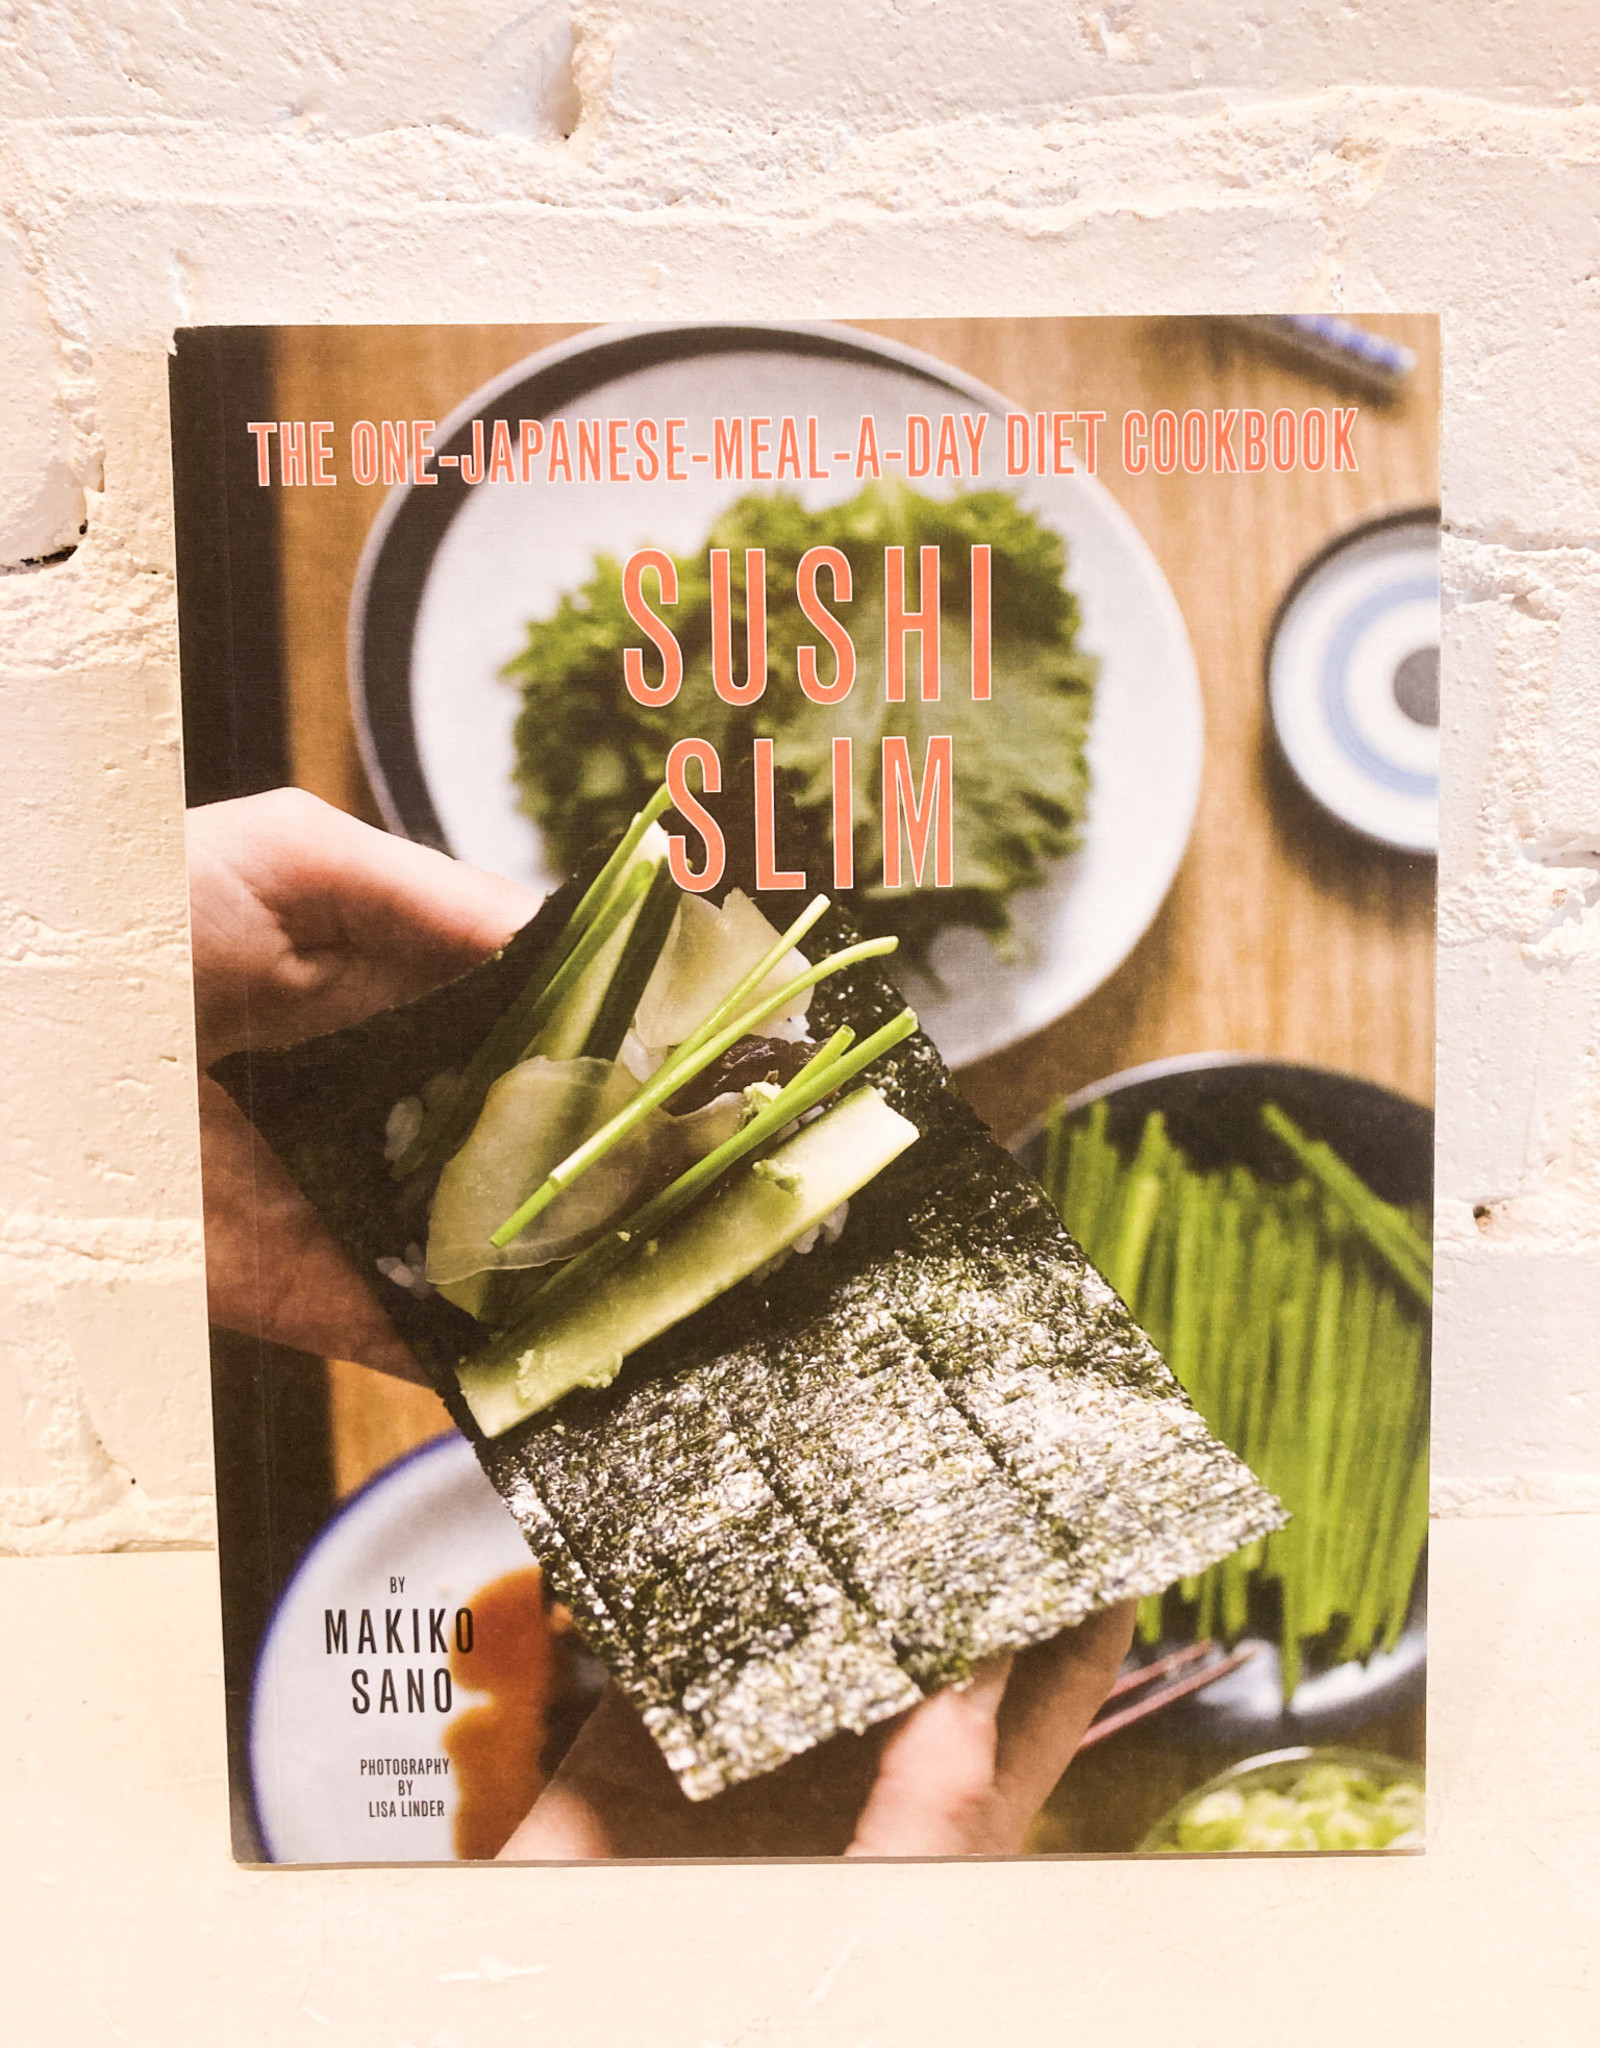 Sushi Slim: The One-Japanese-Meal-a-Day Diet Cookbook by Makiko Sano